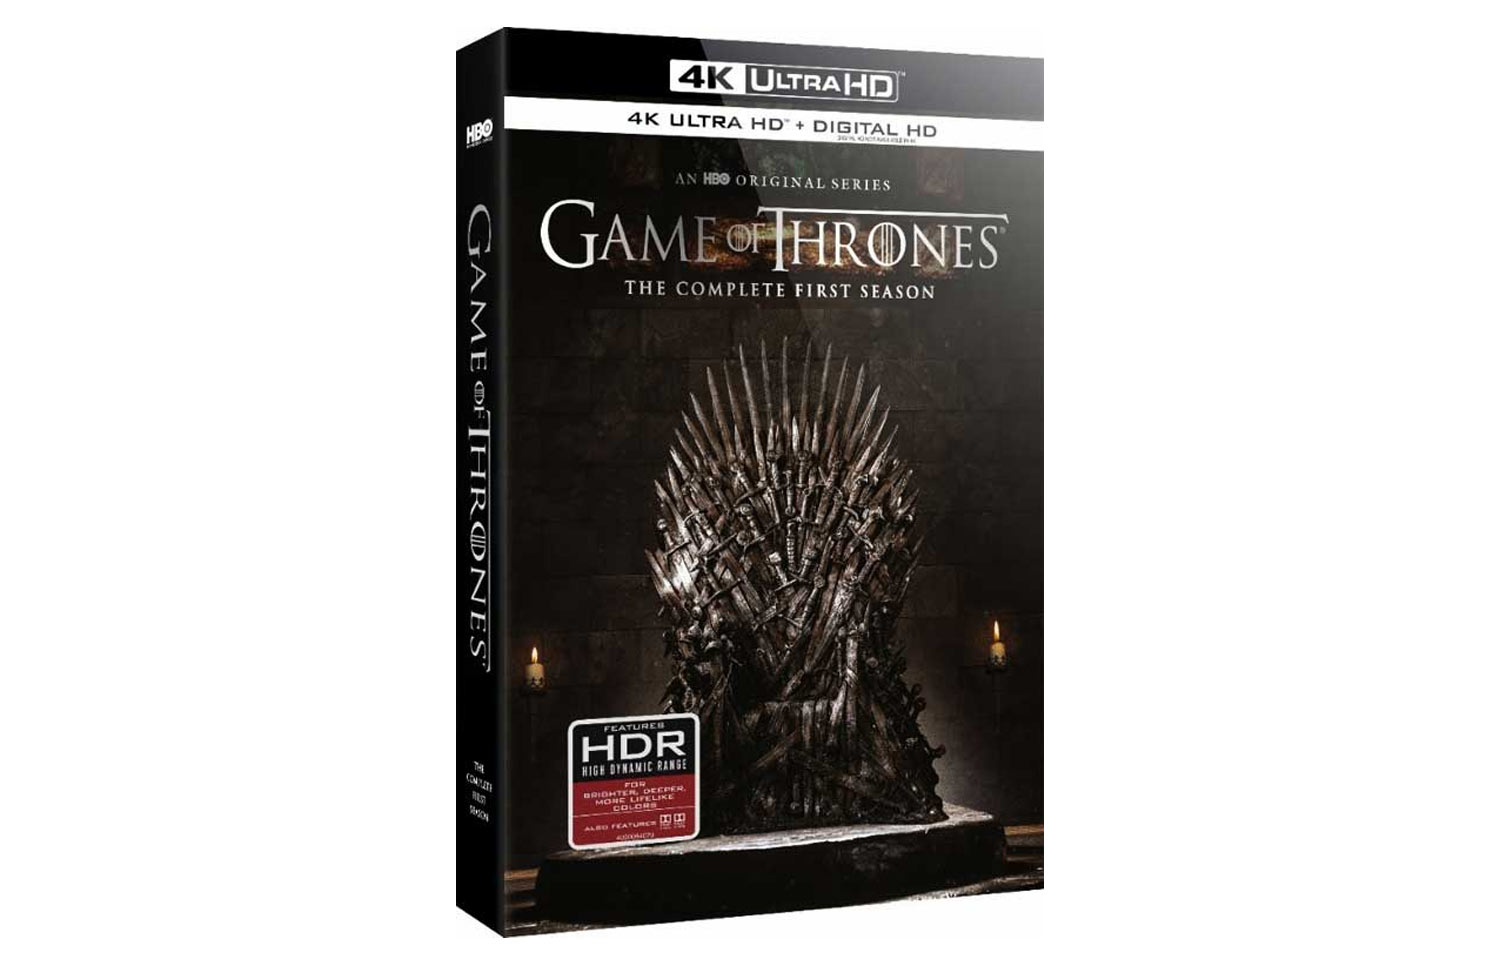 Game of Thrones is coming to UHD Blu-ray - FlatpanelsHD